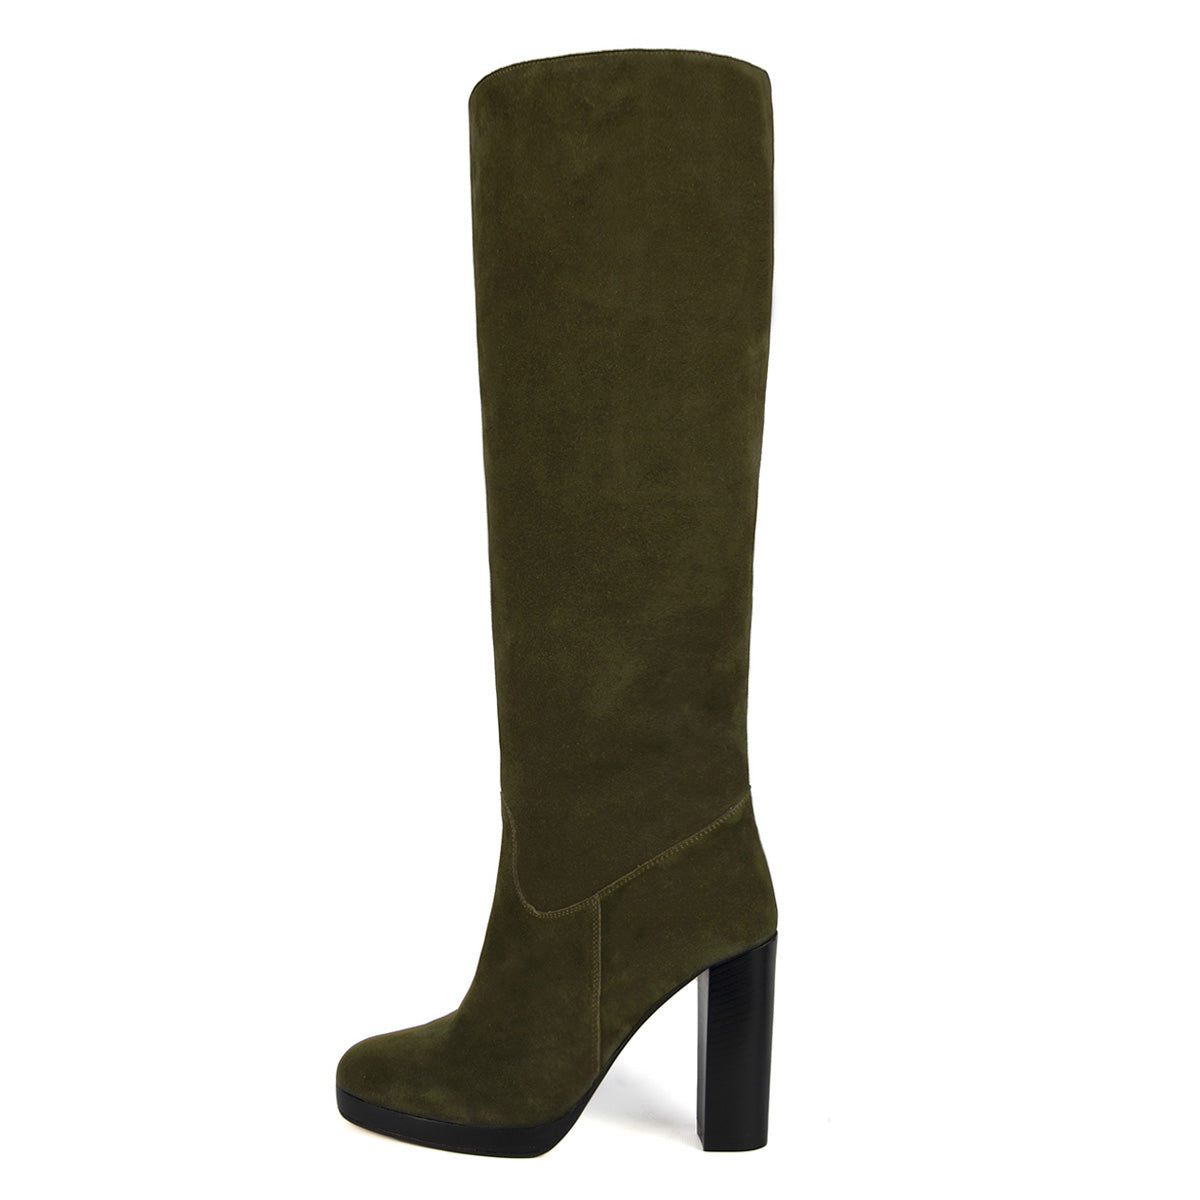 Ribes suede, olive green - wide calf boots, large fit boots, calf fitting boots, narrow calf boots